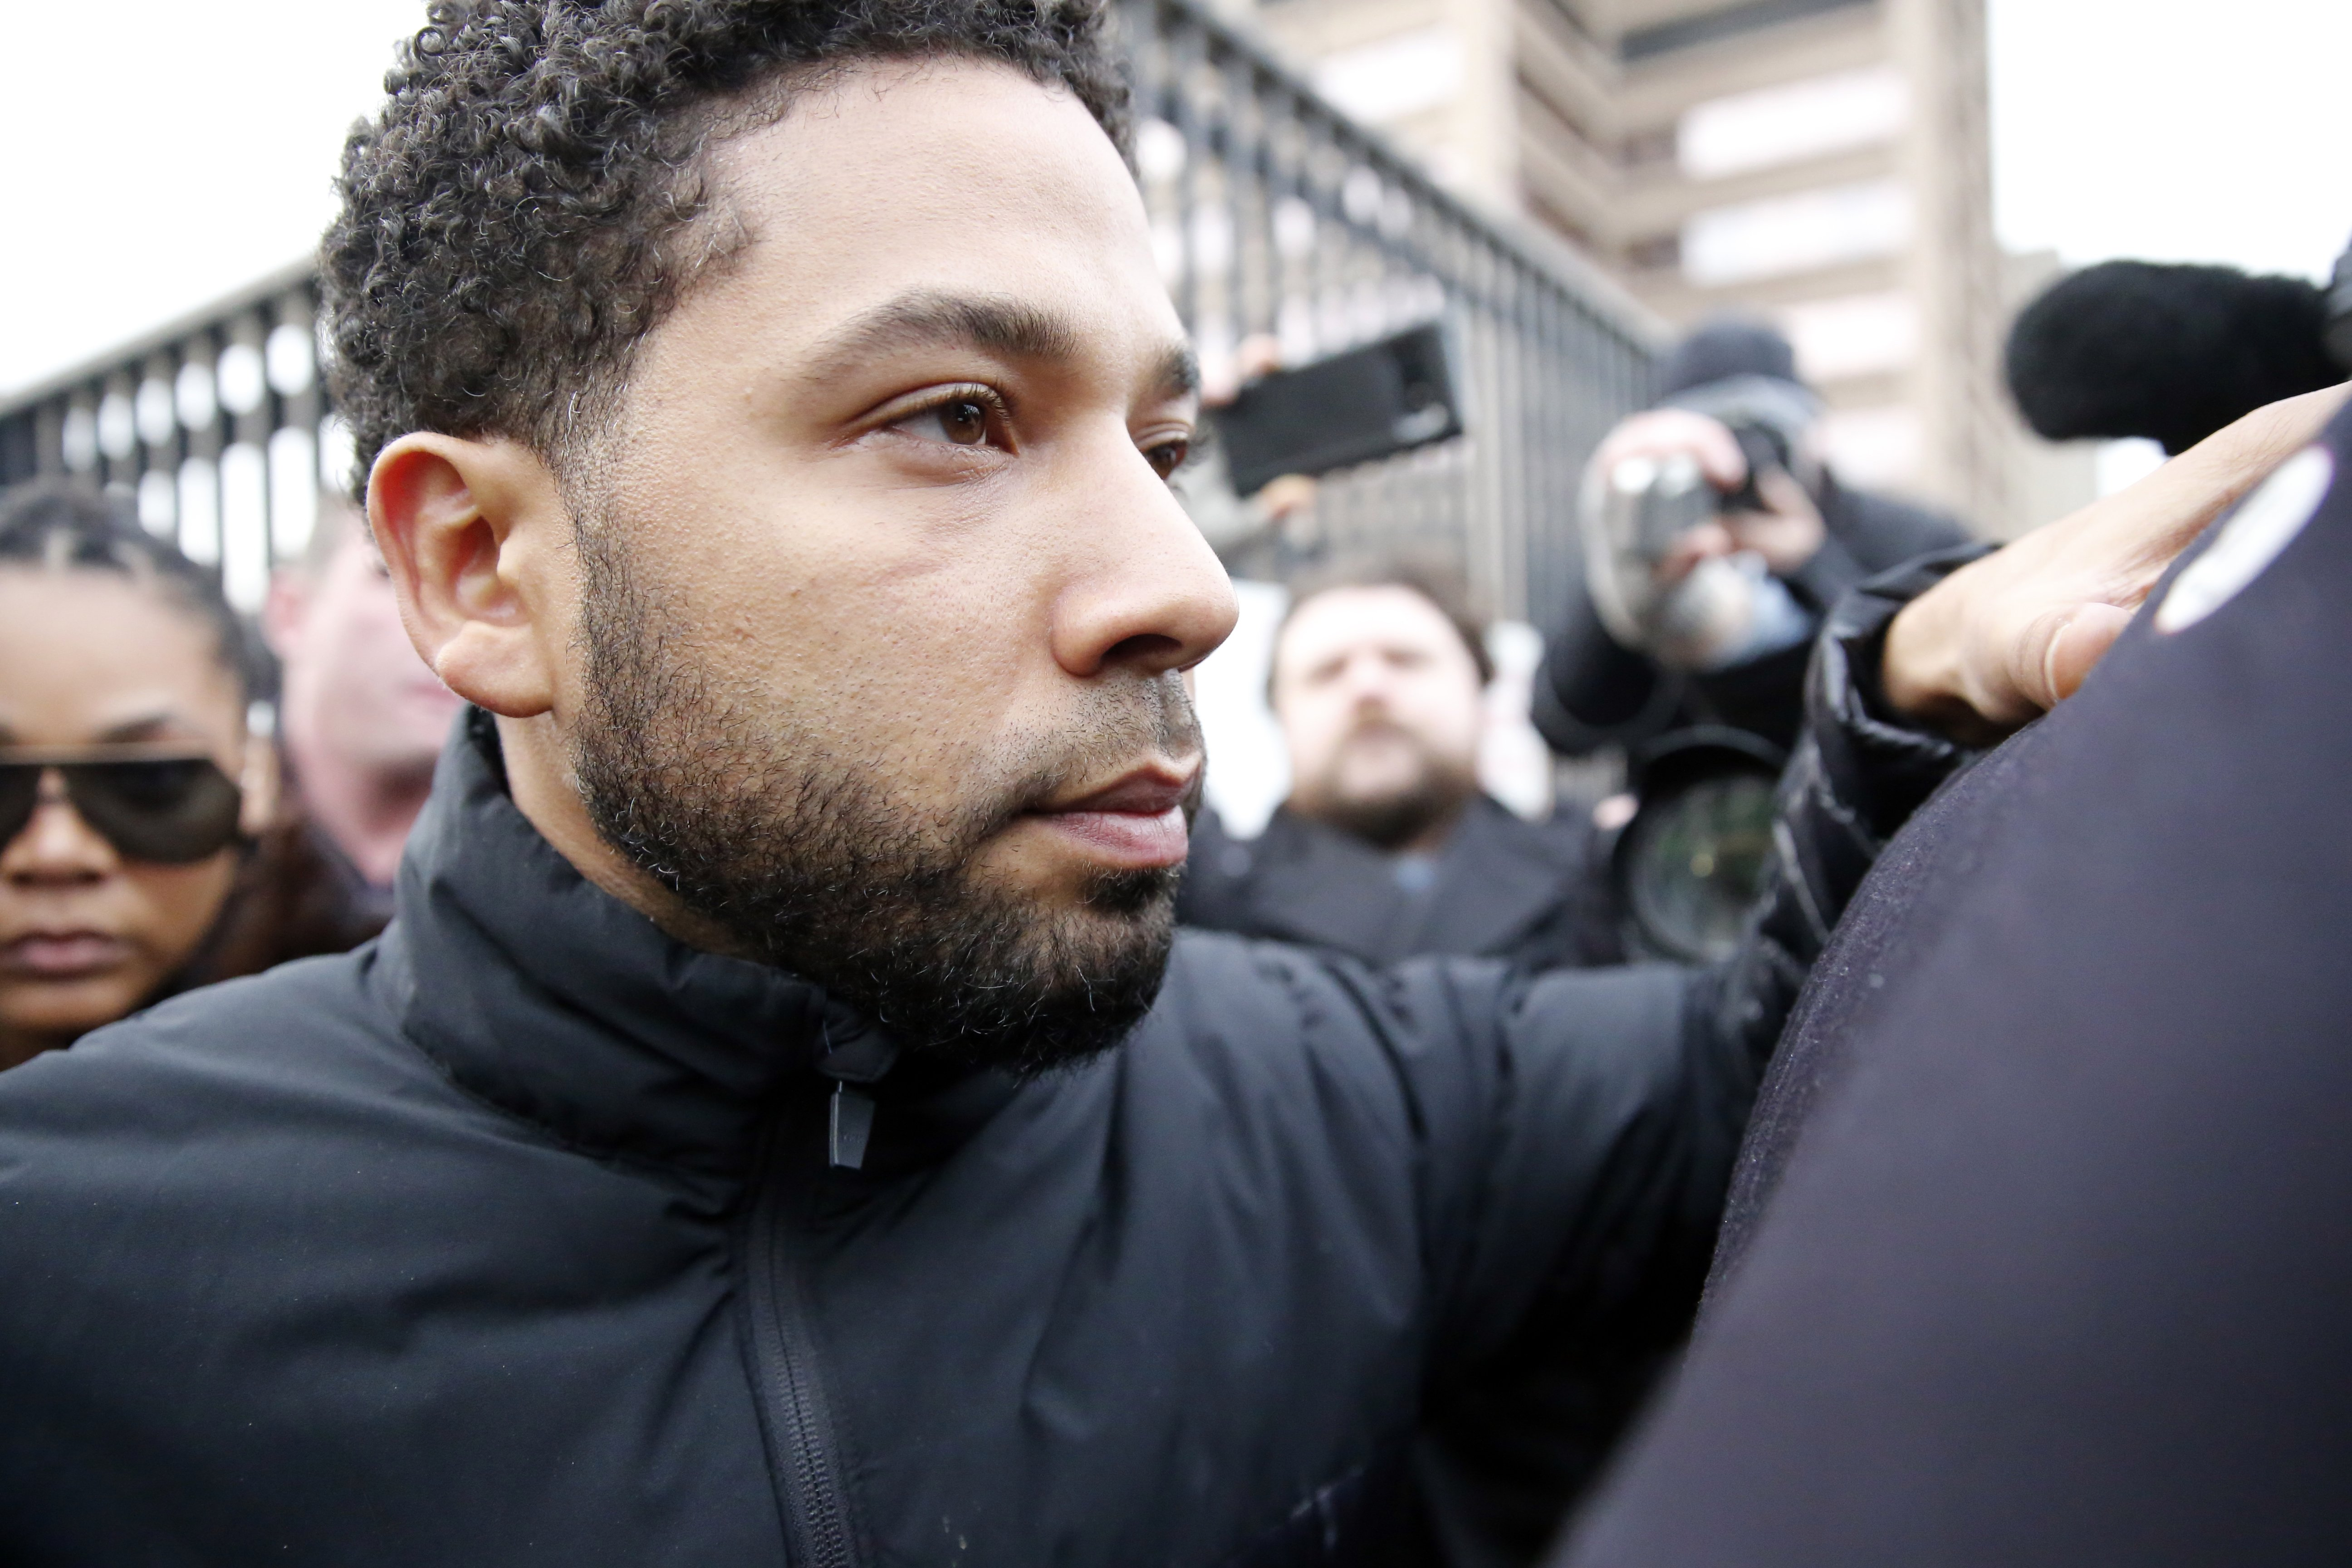 Jussie Smollett leaves Cook County jail after posting bond on February 21, 2019 in Chicago, Illinois. | Photo: GettyImages/Global Images of Ukraine